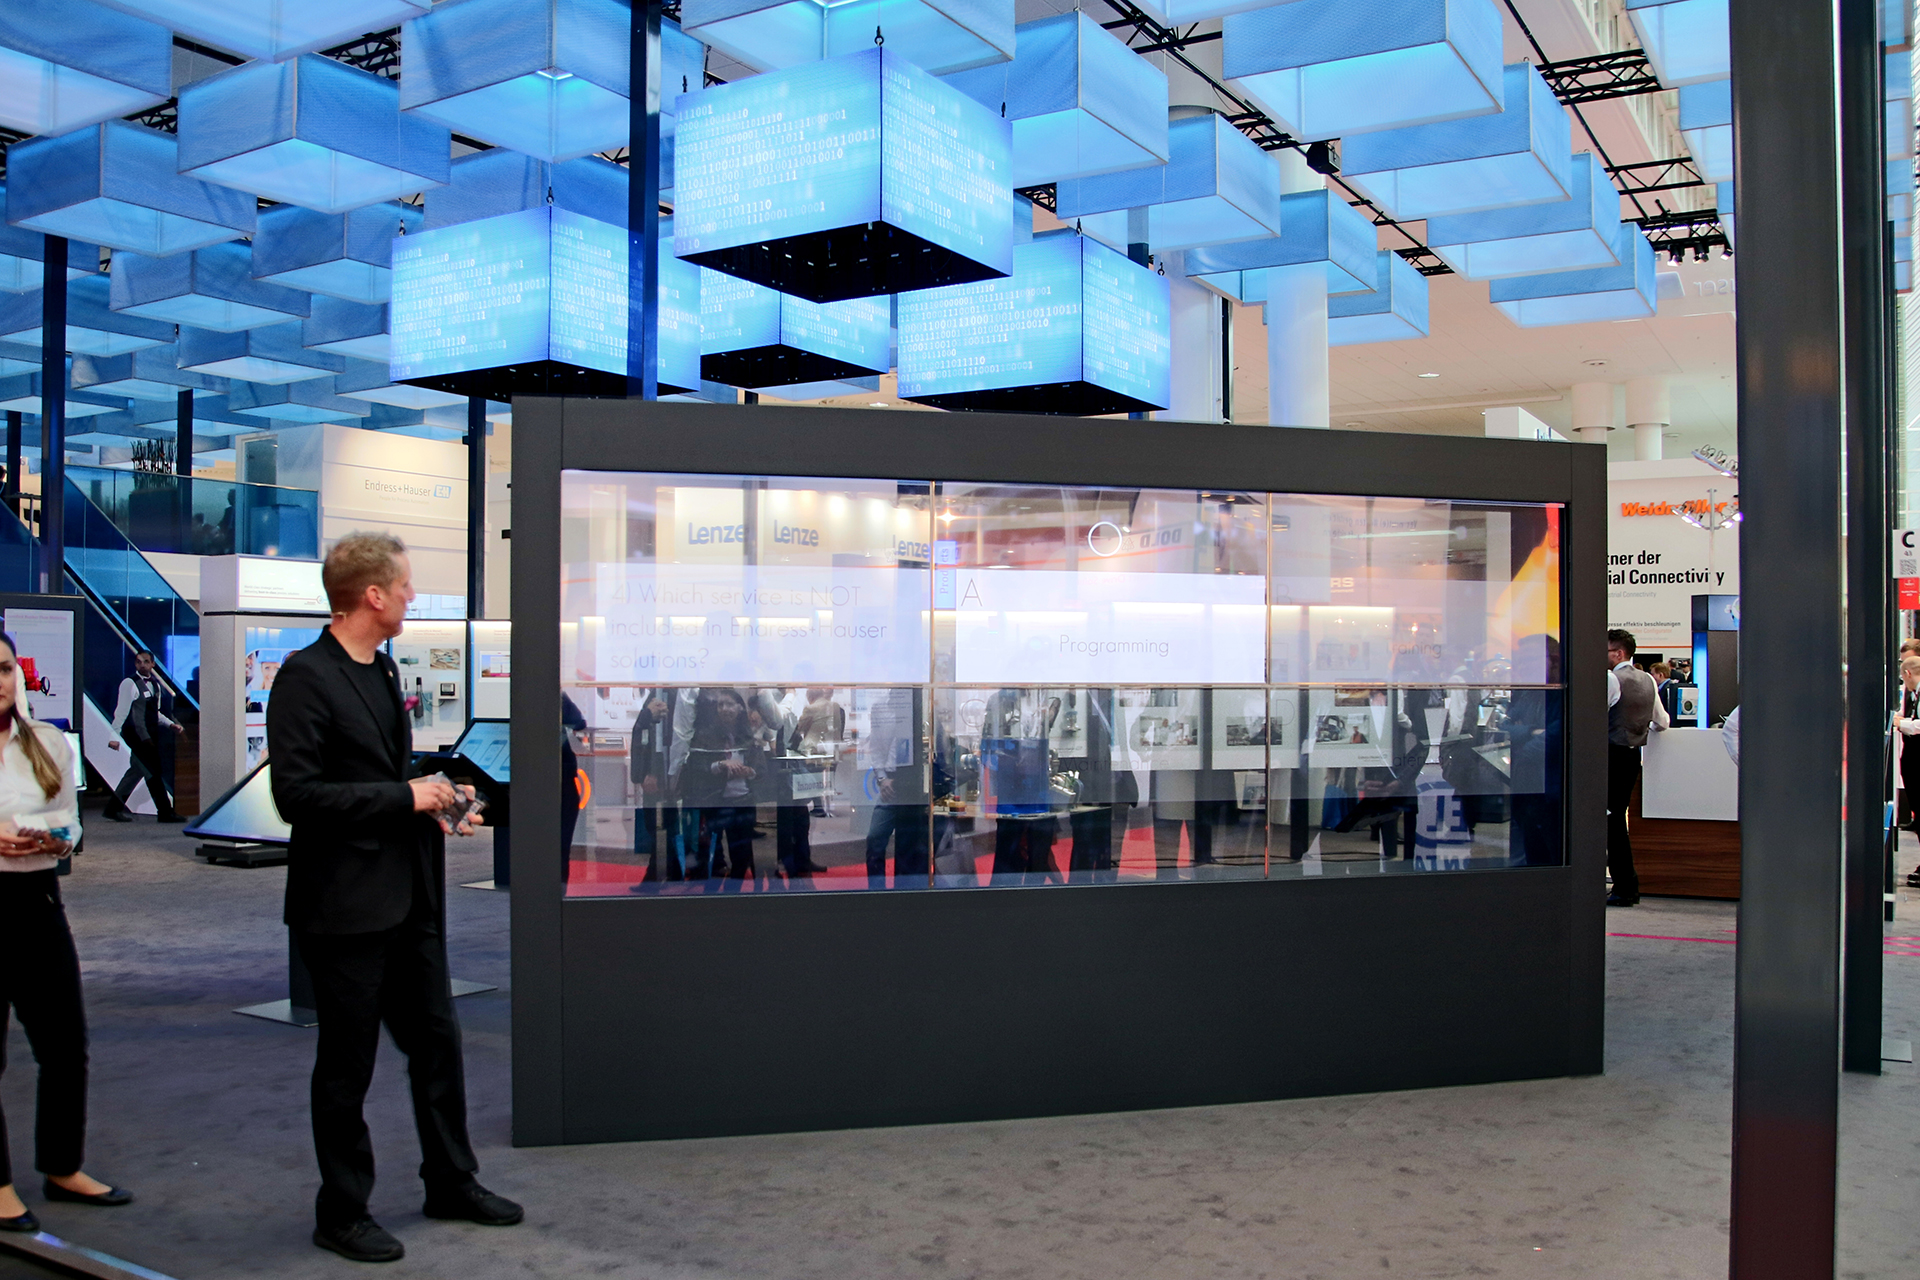 The visual effect of the transparent OLED Powerwall combined with the interplay of produced content and the moderated live presentation creates great amazement among visitors. Depending on the theme, colorful liquids spill into the screens or out again via an animation. Presented texts are partly superimposed and flow together with the liquid.